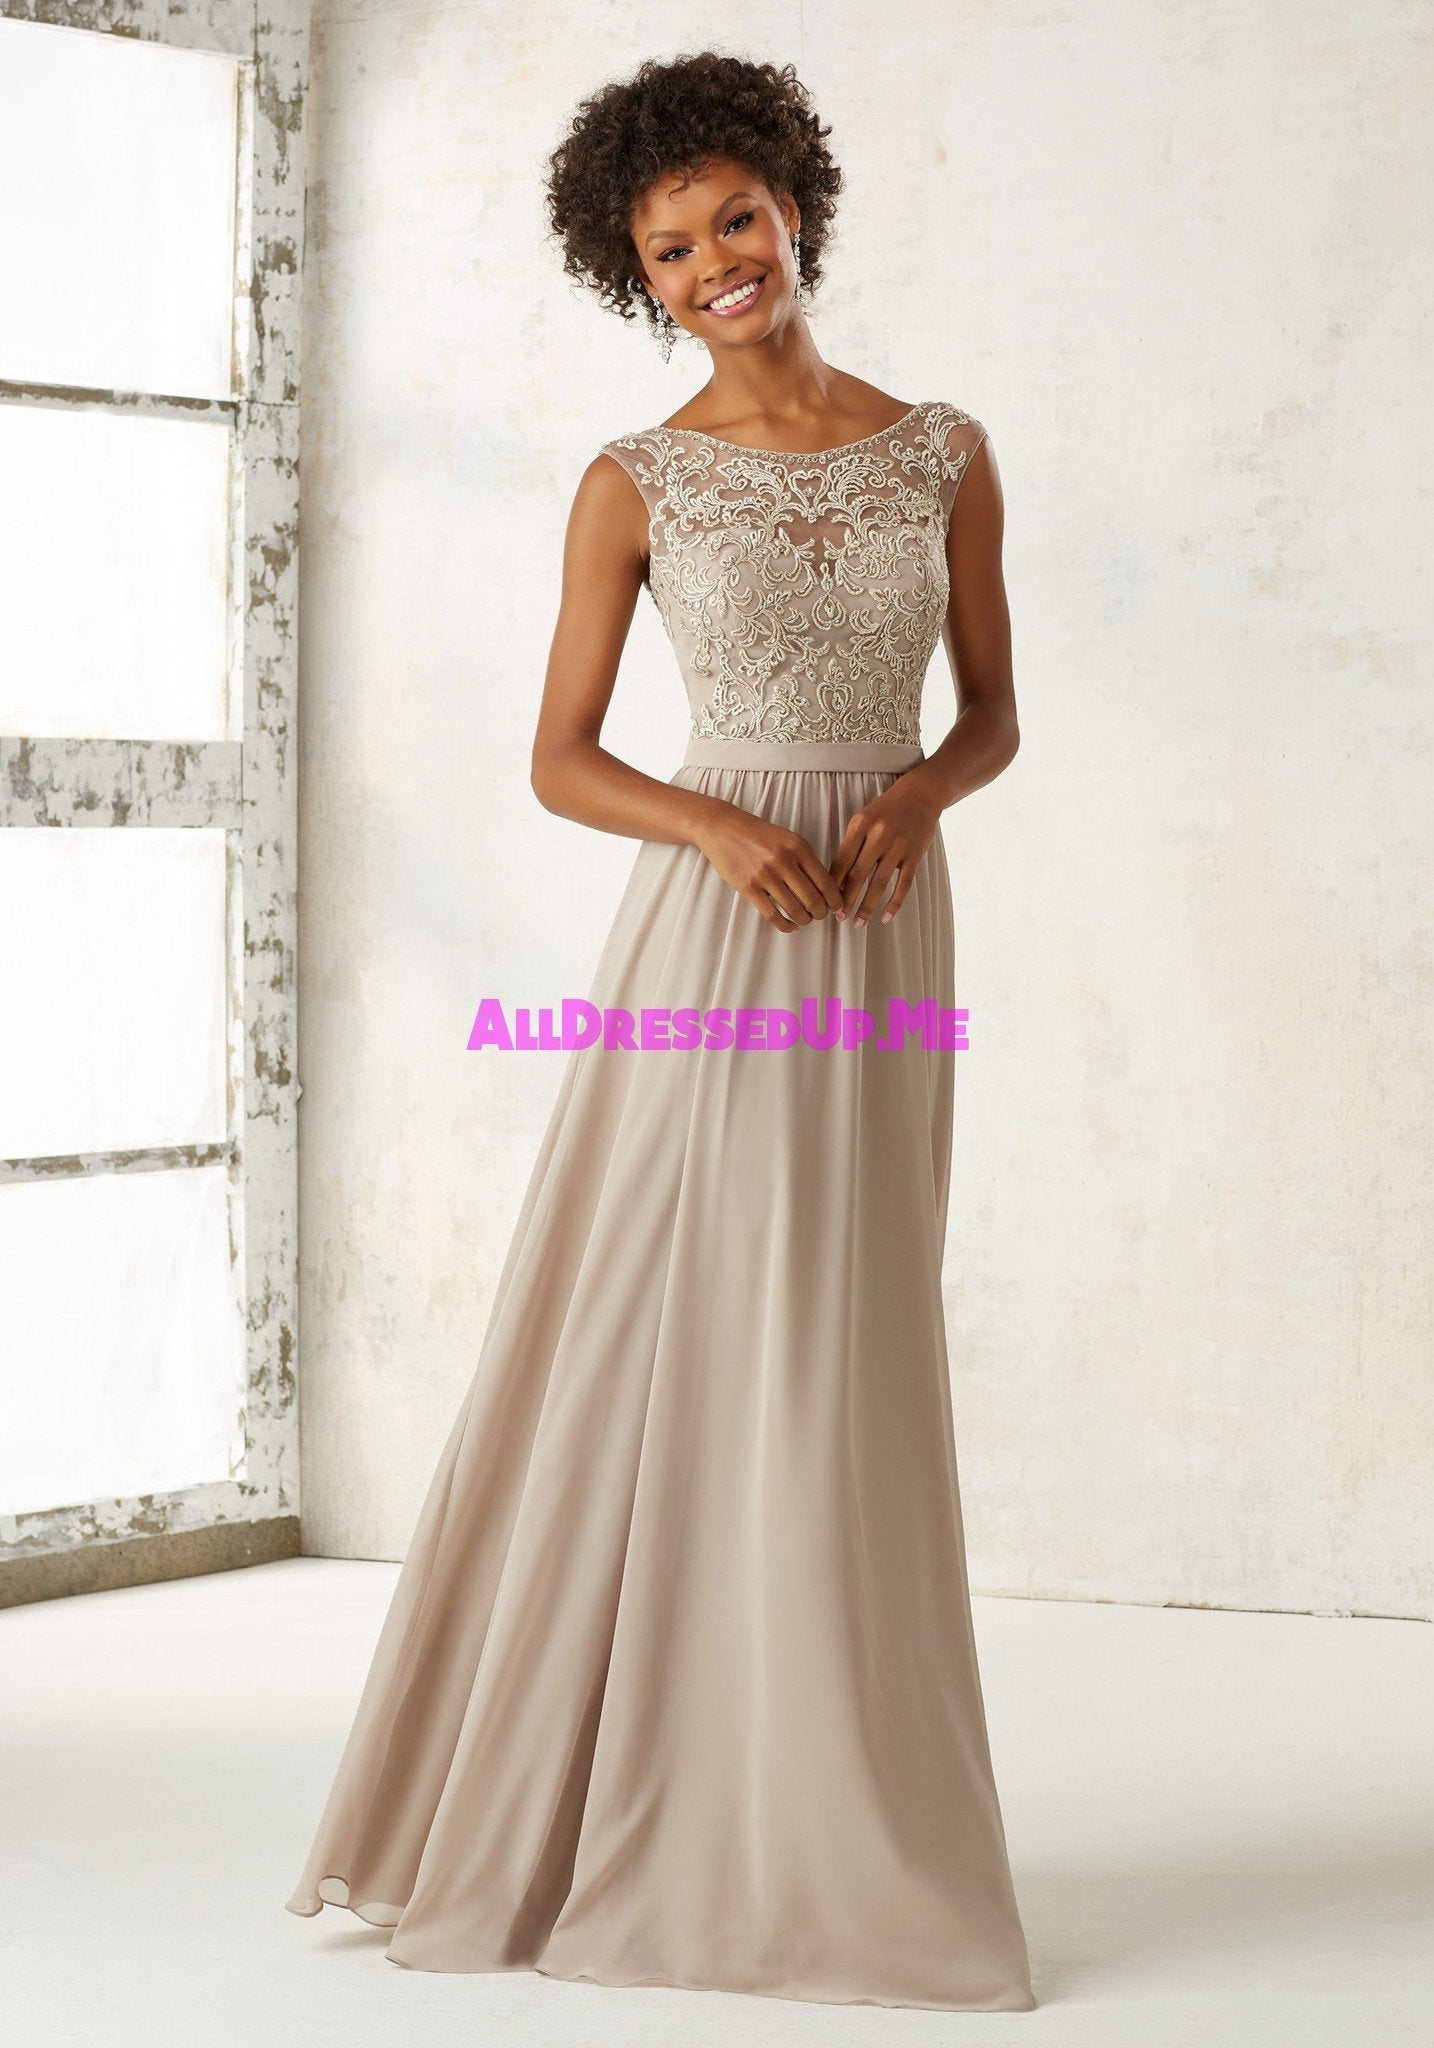 85968abf729 Morilee Bridesmaids Dresses - 21522 - All Dressed Up - Morilee - - Dresses  Wedding Chattanooga